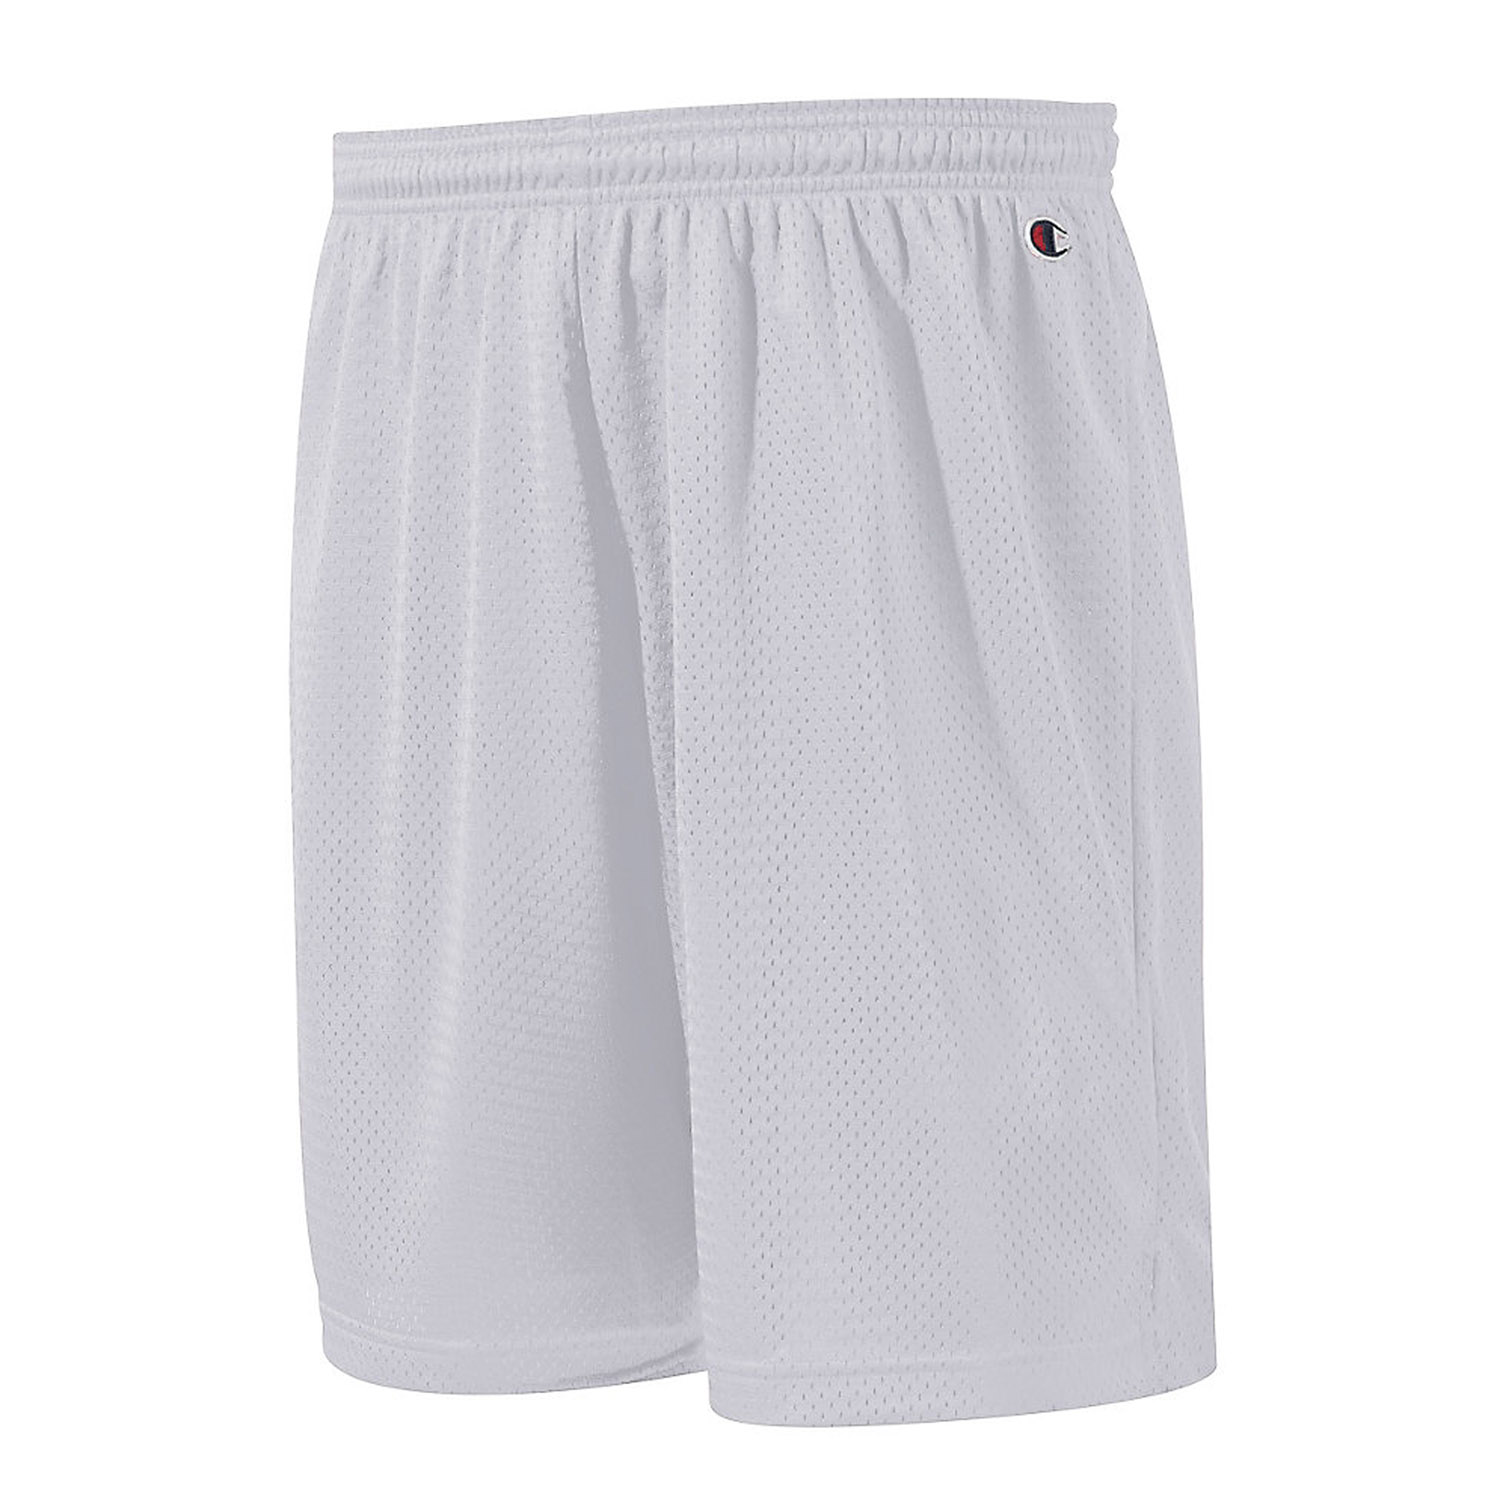 "Champion Polyester Mesh 9"" Shorts"